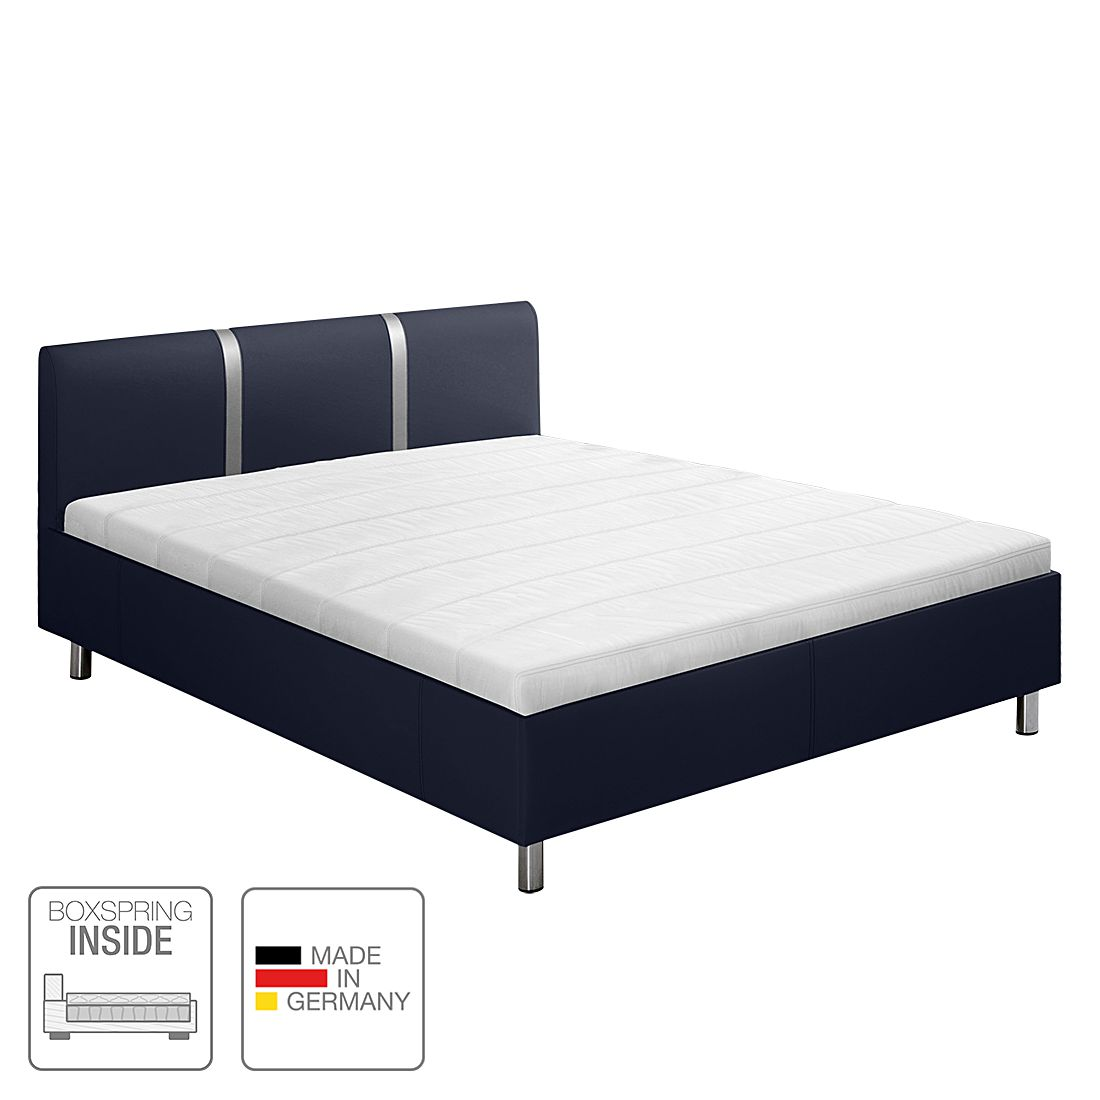 boxspring inside bett caya kunstleder 160 x 200cm h2 bis 80 kg bonellfederkernmatratze. Black Bedroom Furniture Sets. Home Design Ideas